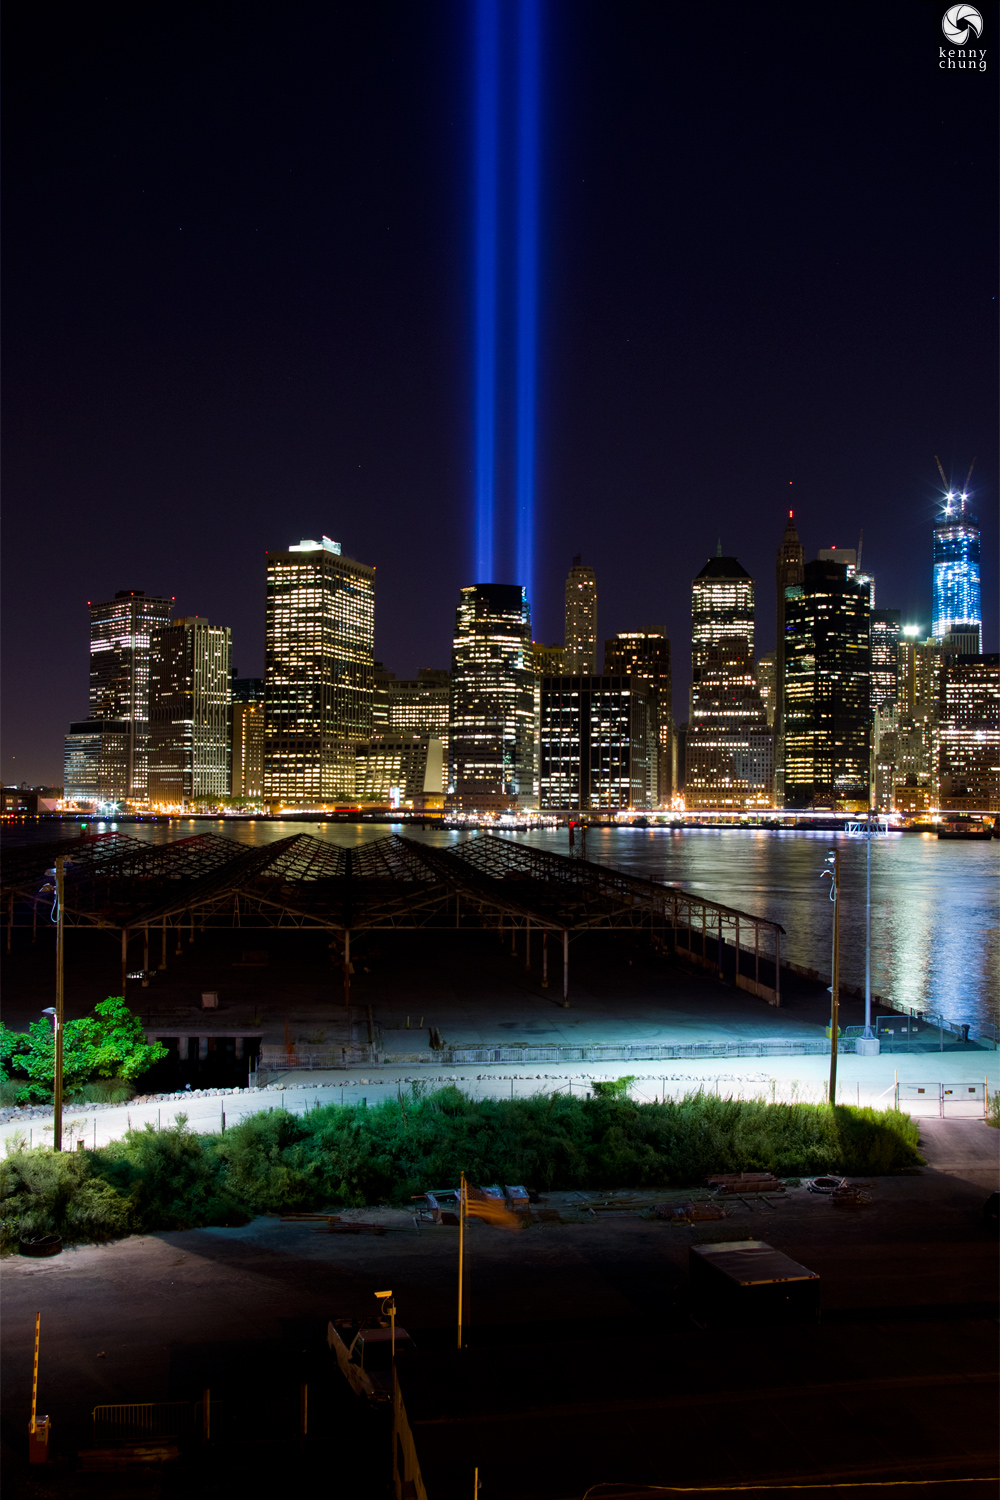 September 11 2012 Tribute in Light